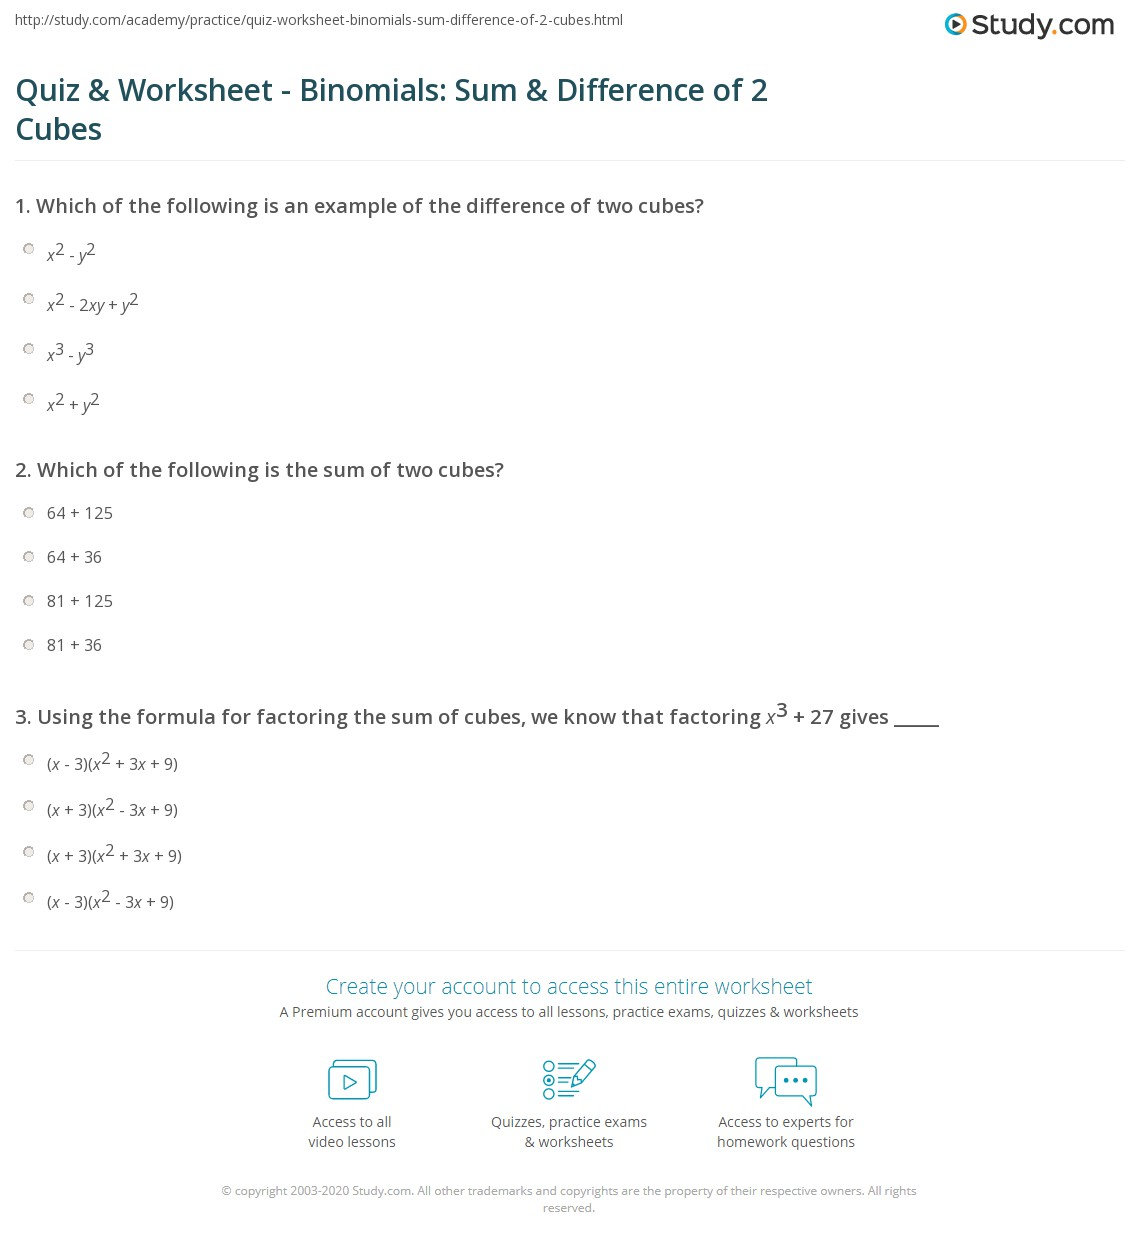 Factoring special cases worksheet with answers